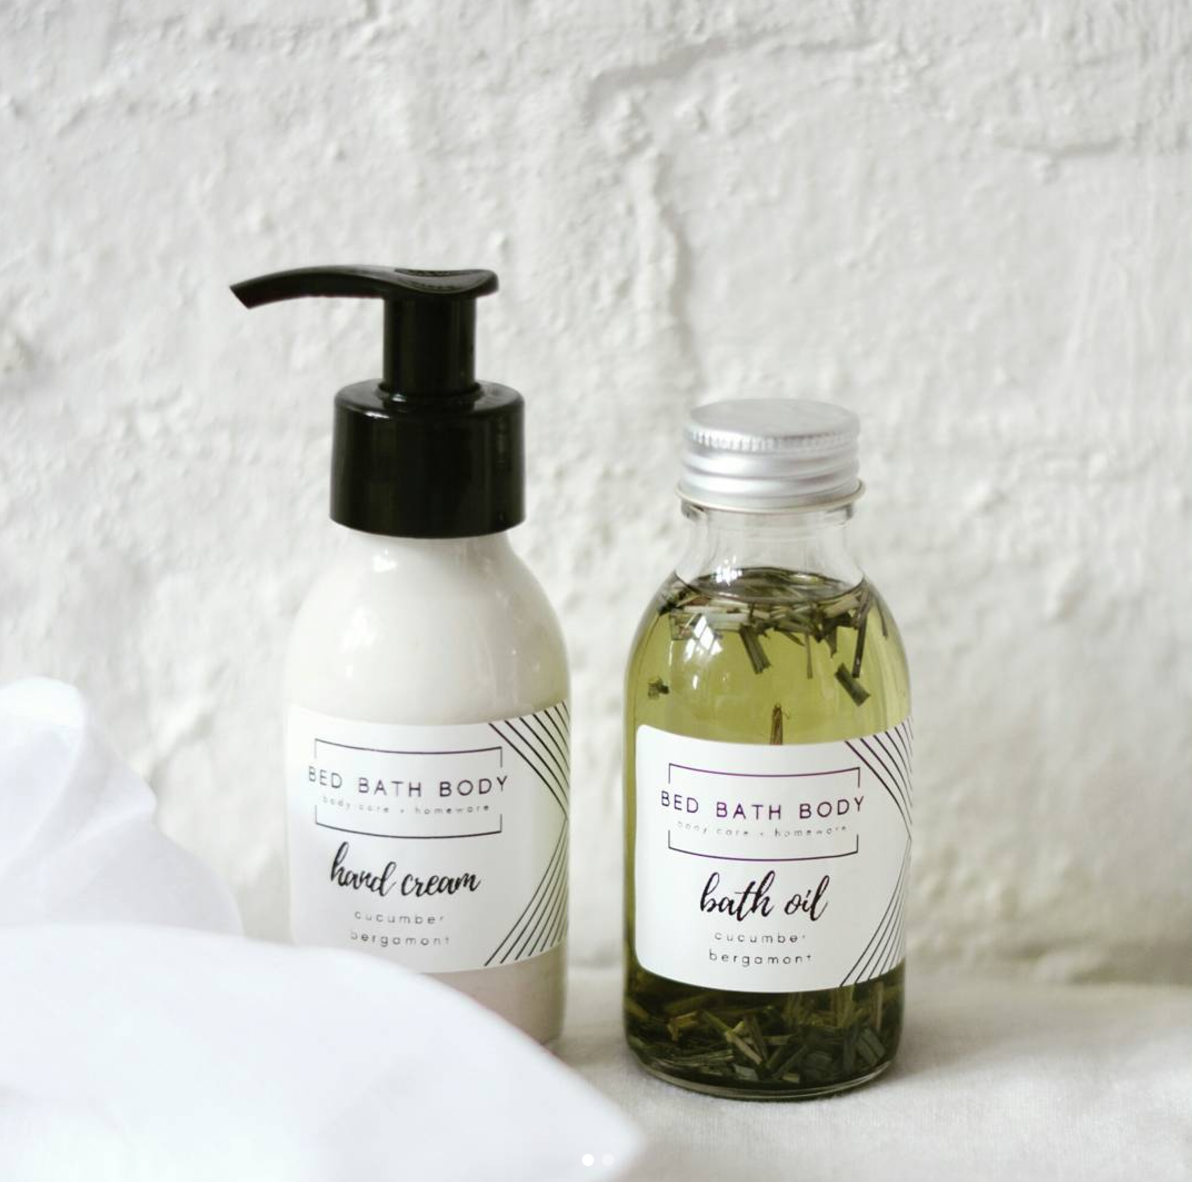 Bed Bath Body products are natural and paraben-free